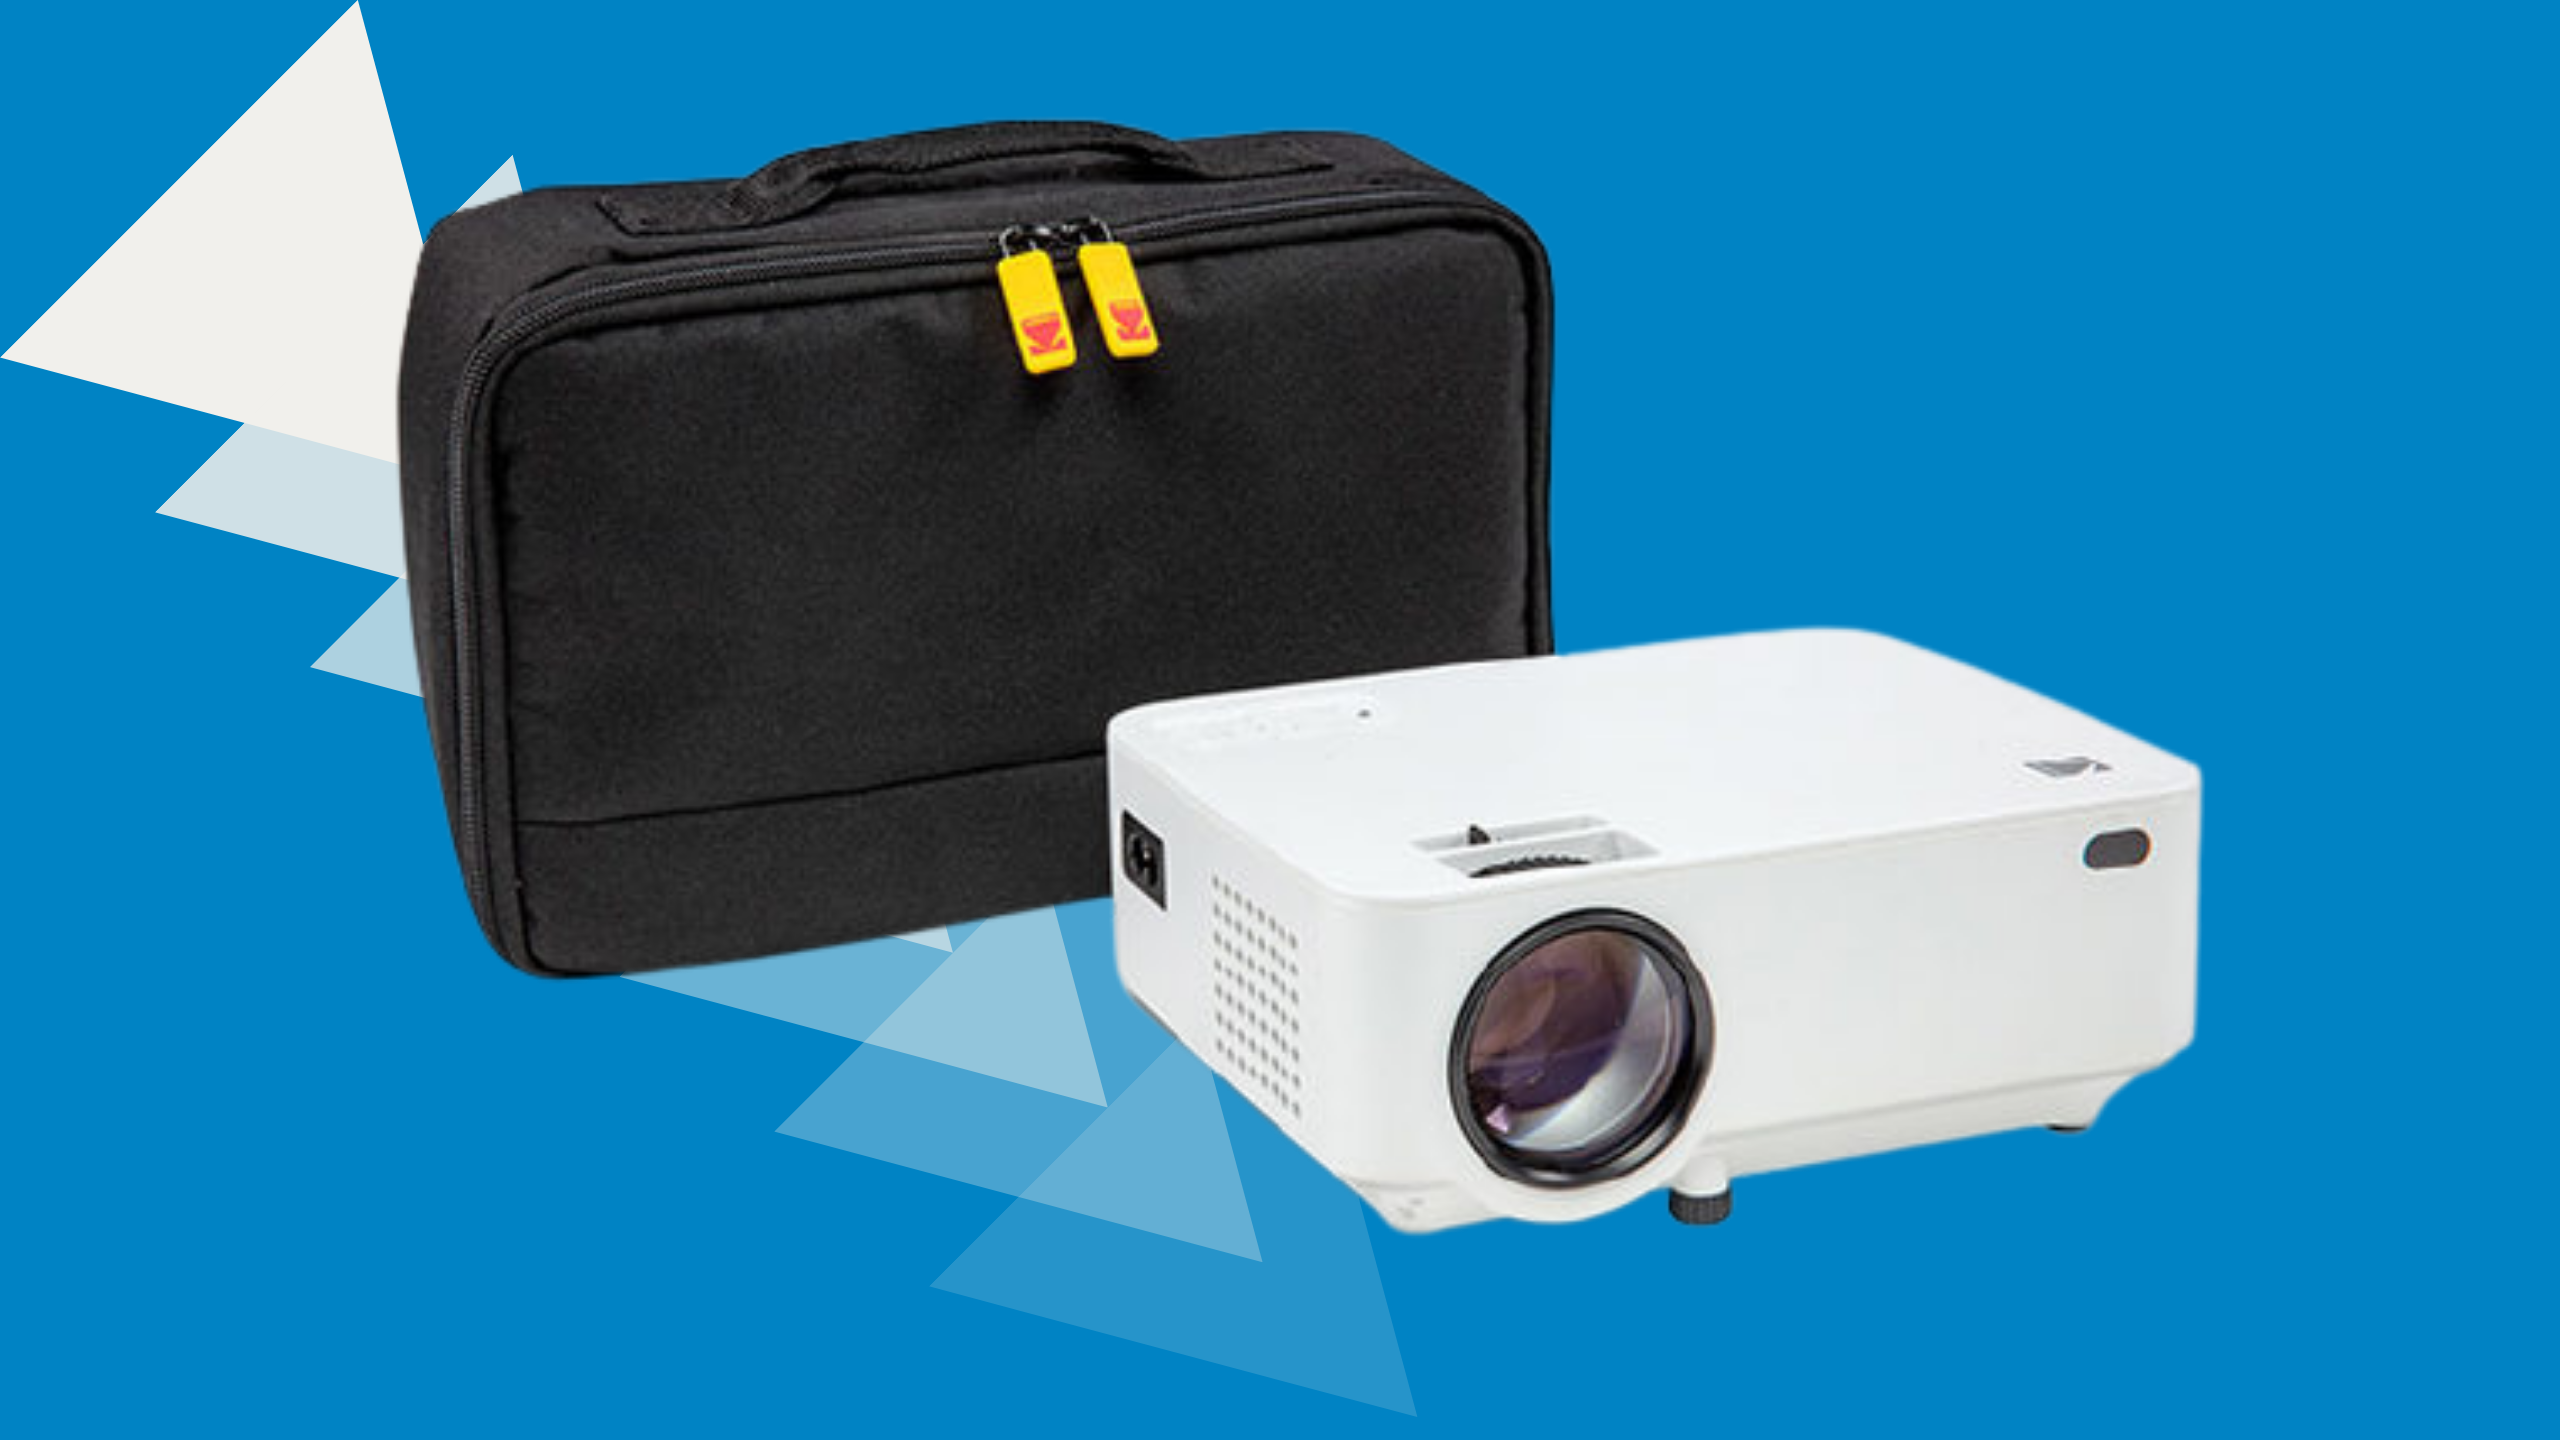 Bring the movies home with this budget-friendly Kodak projector